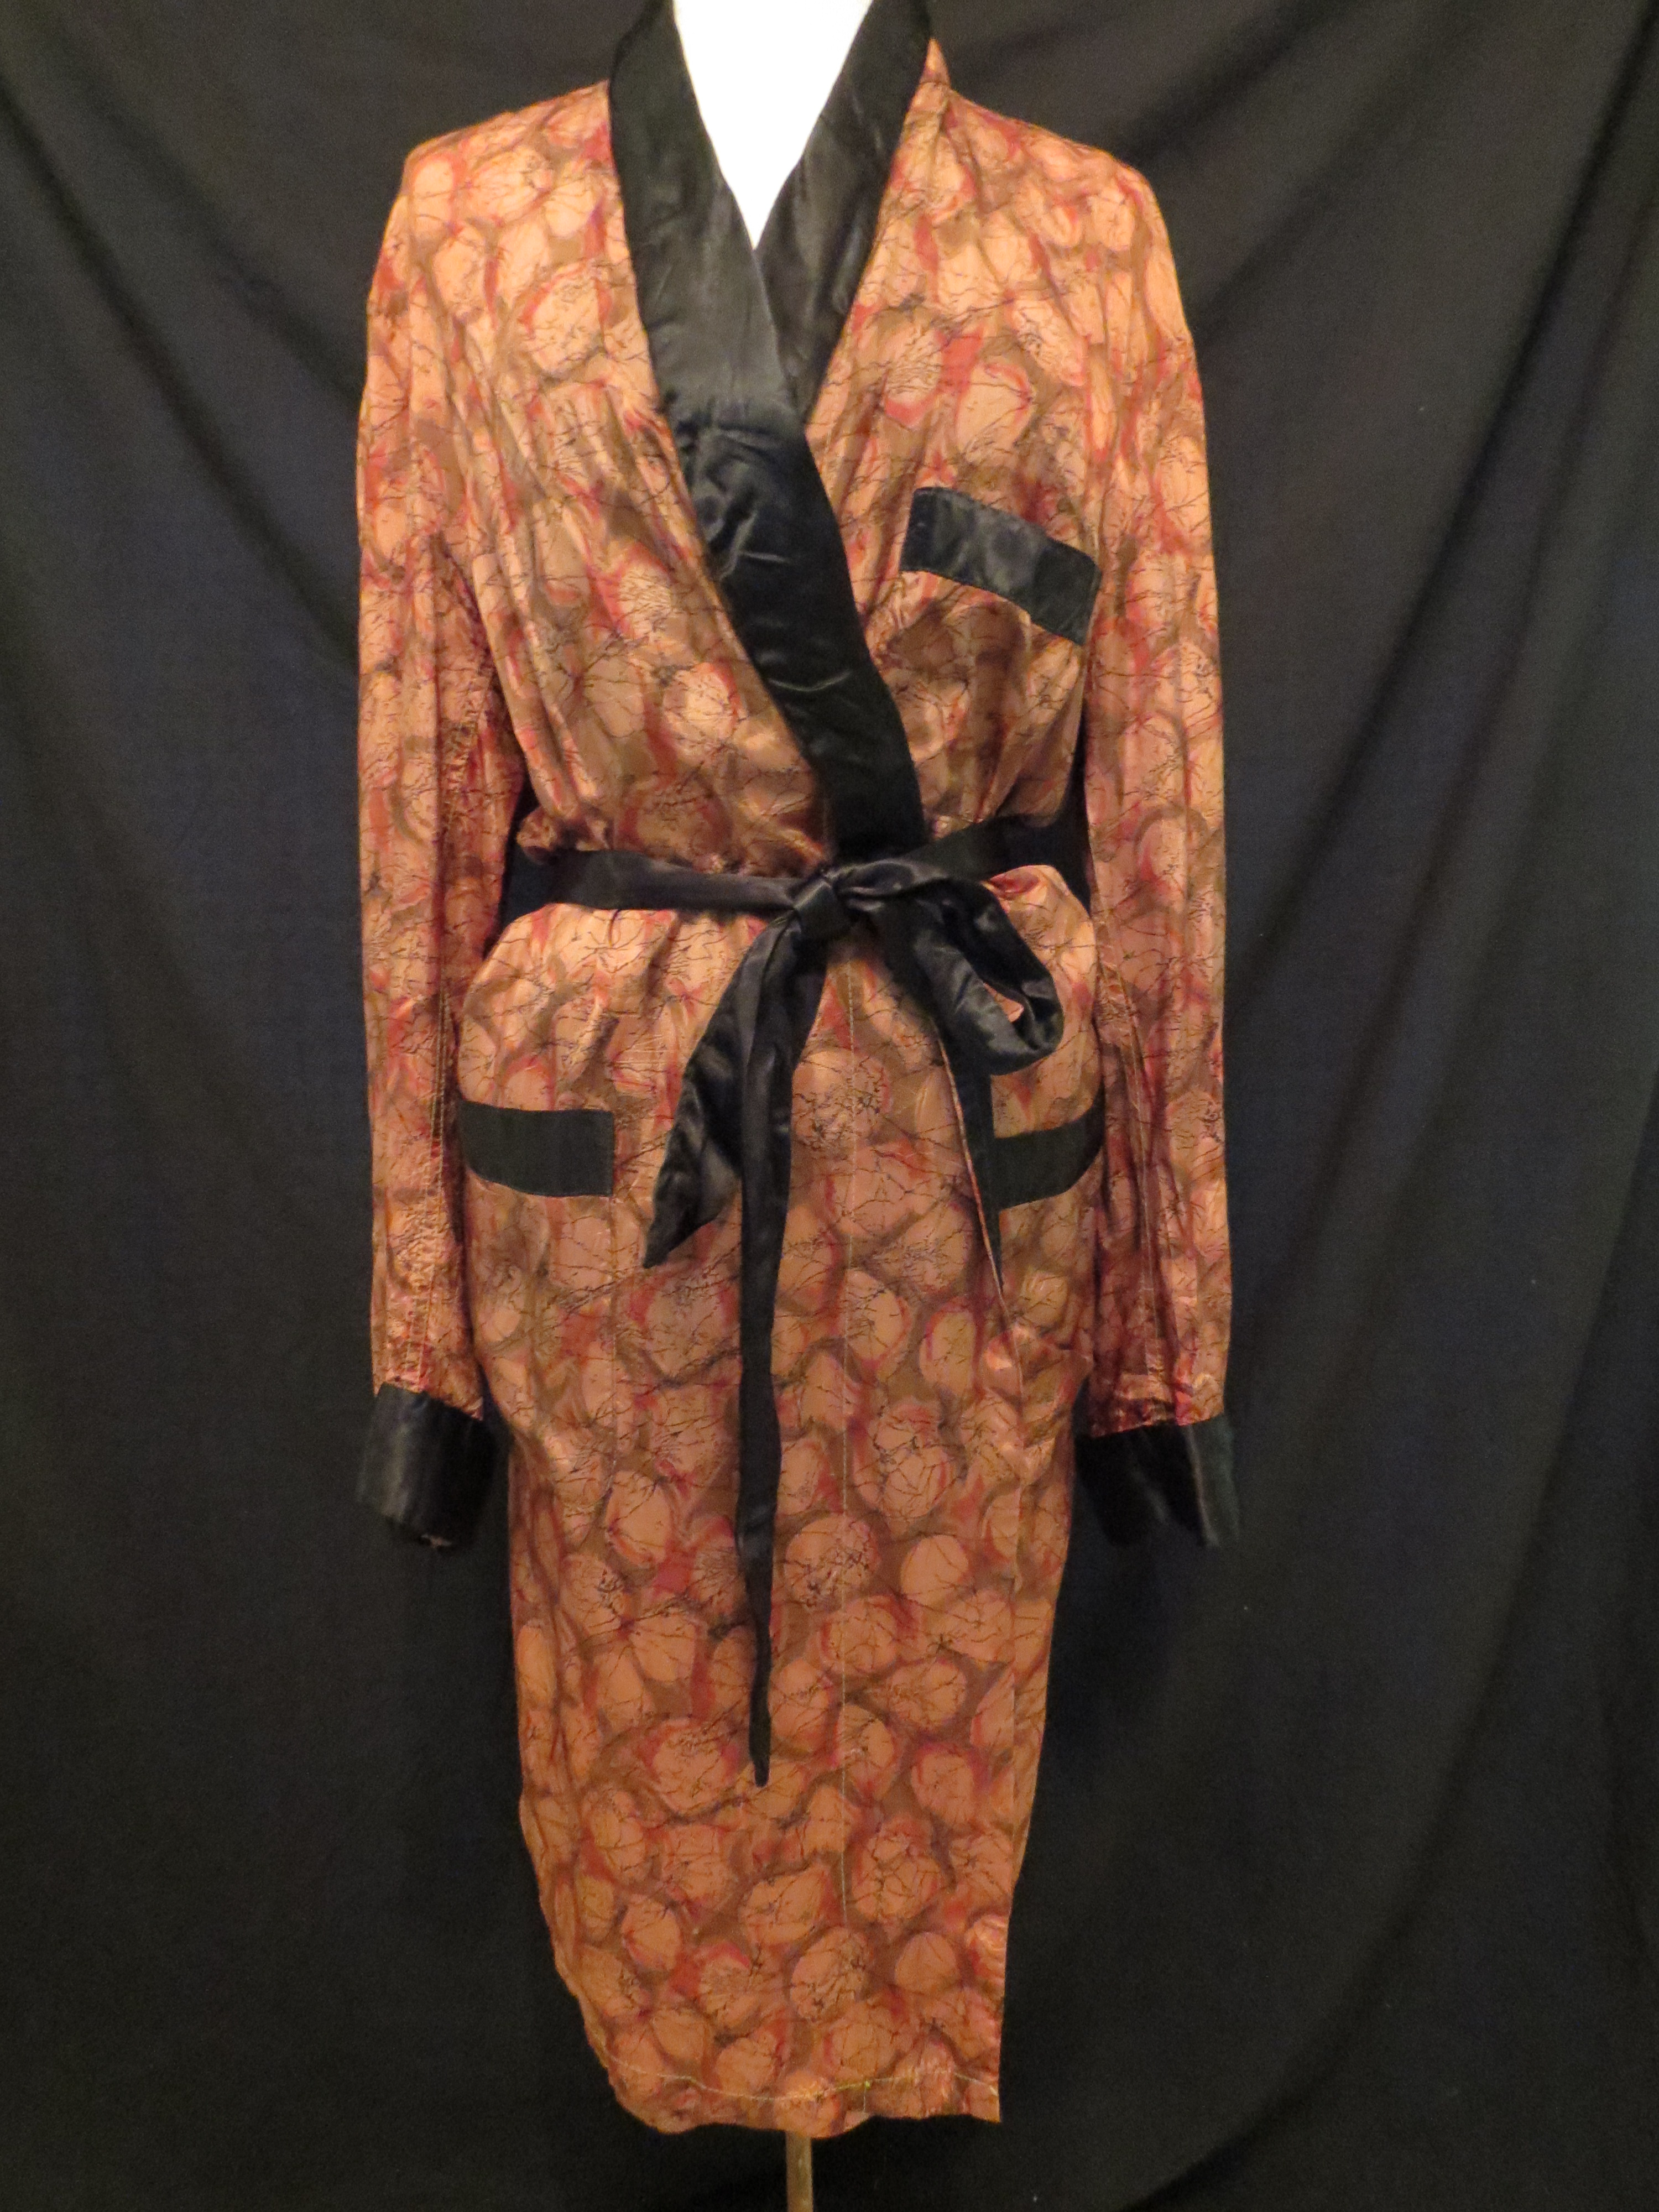 A FAVORITE MEN'S RAYON BATHROBE WITH AN ATOMIC PRINT FROM THE 1940'S - 1950'S